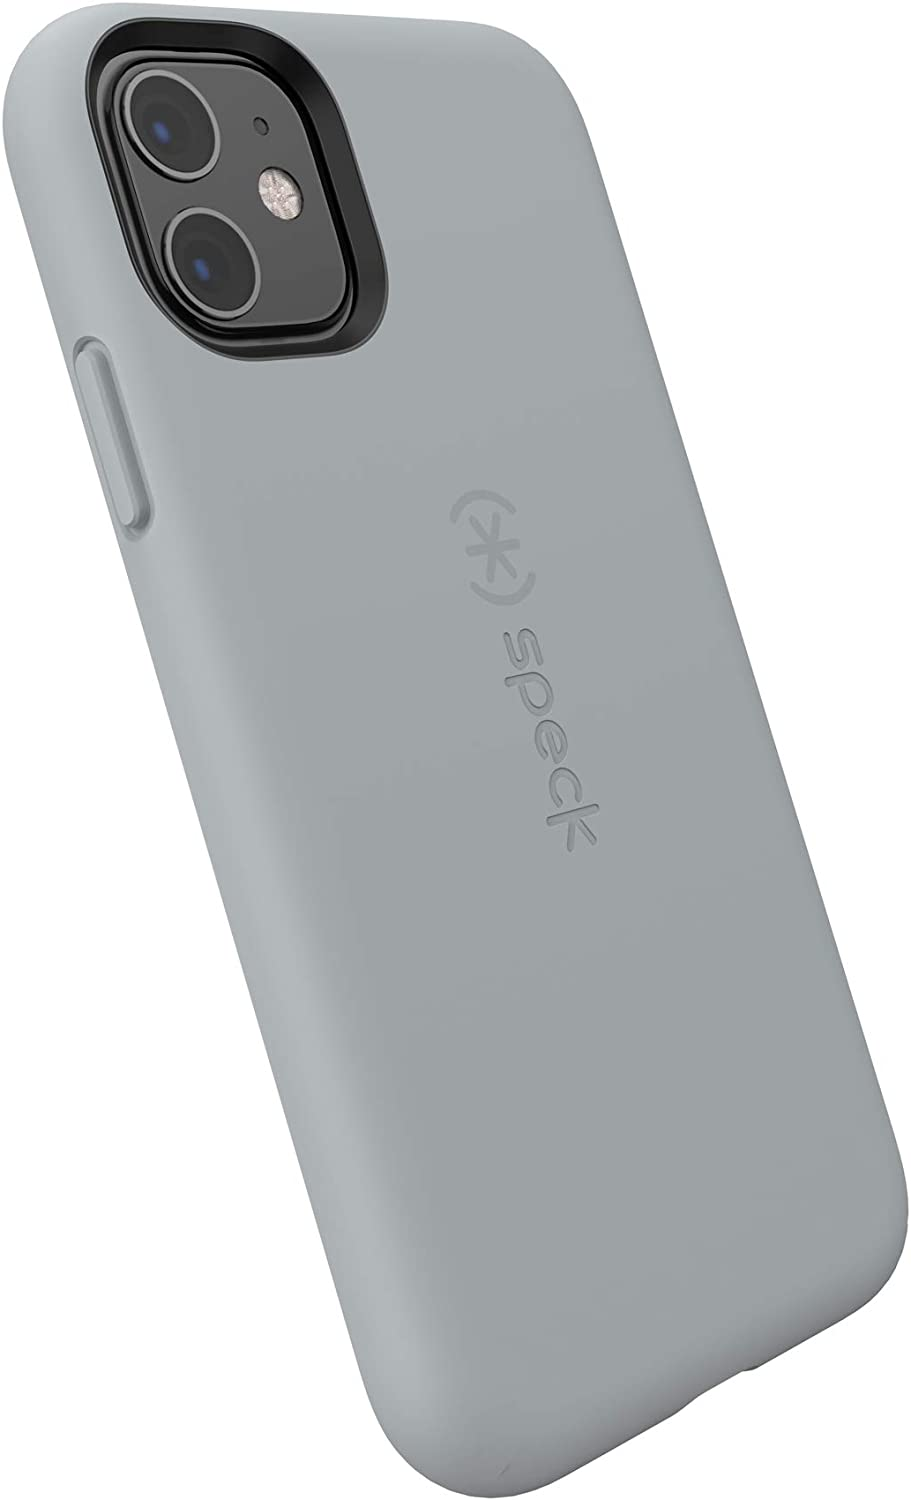 Speck CandyShell Fit iPhone 11 Case, Pebble Grey/Pebble Grey